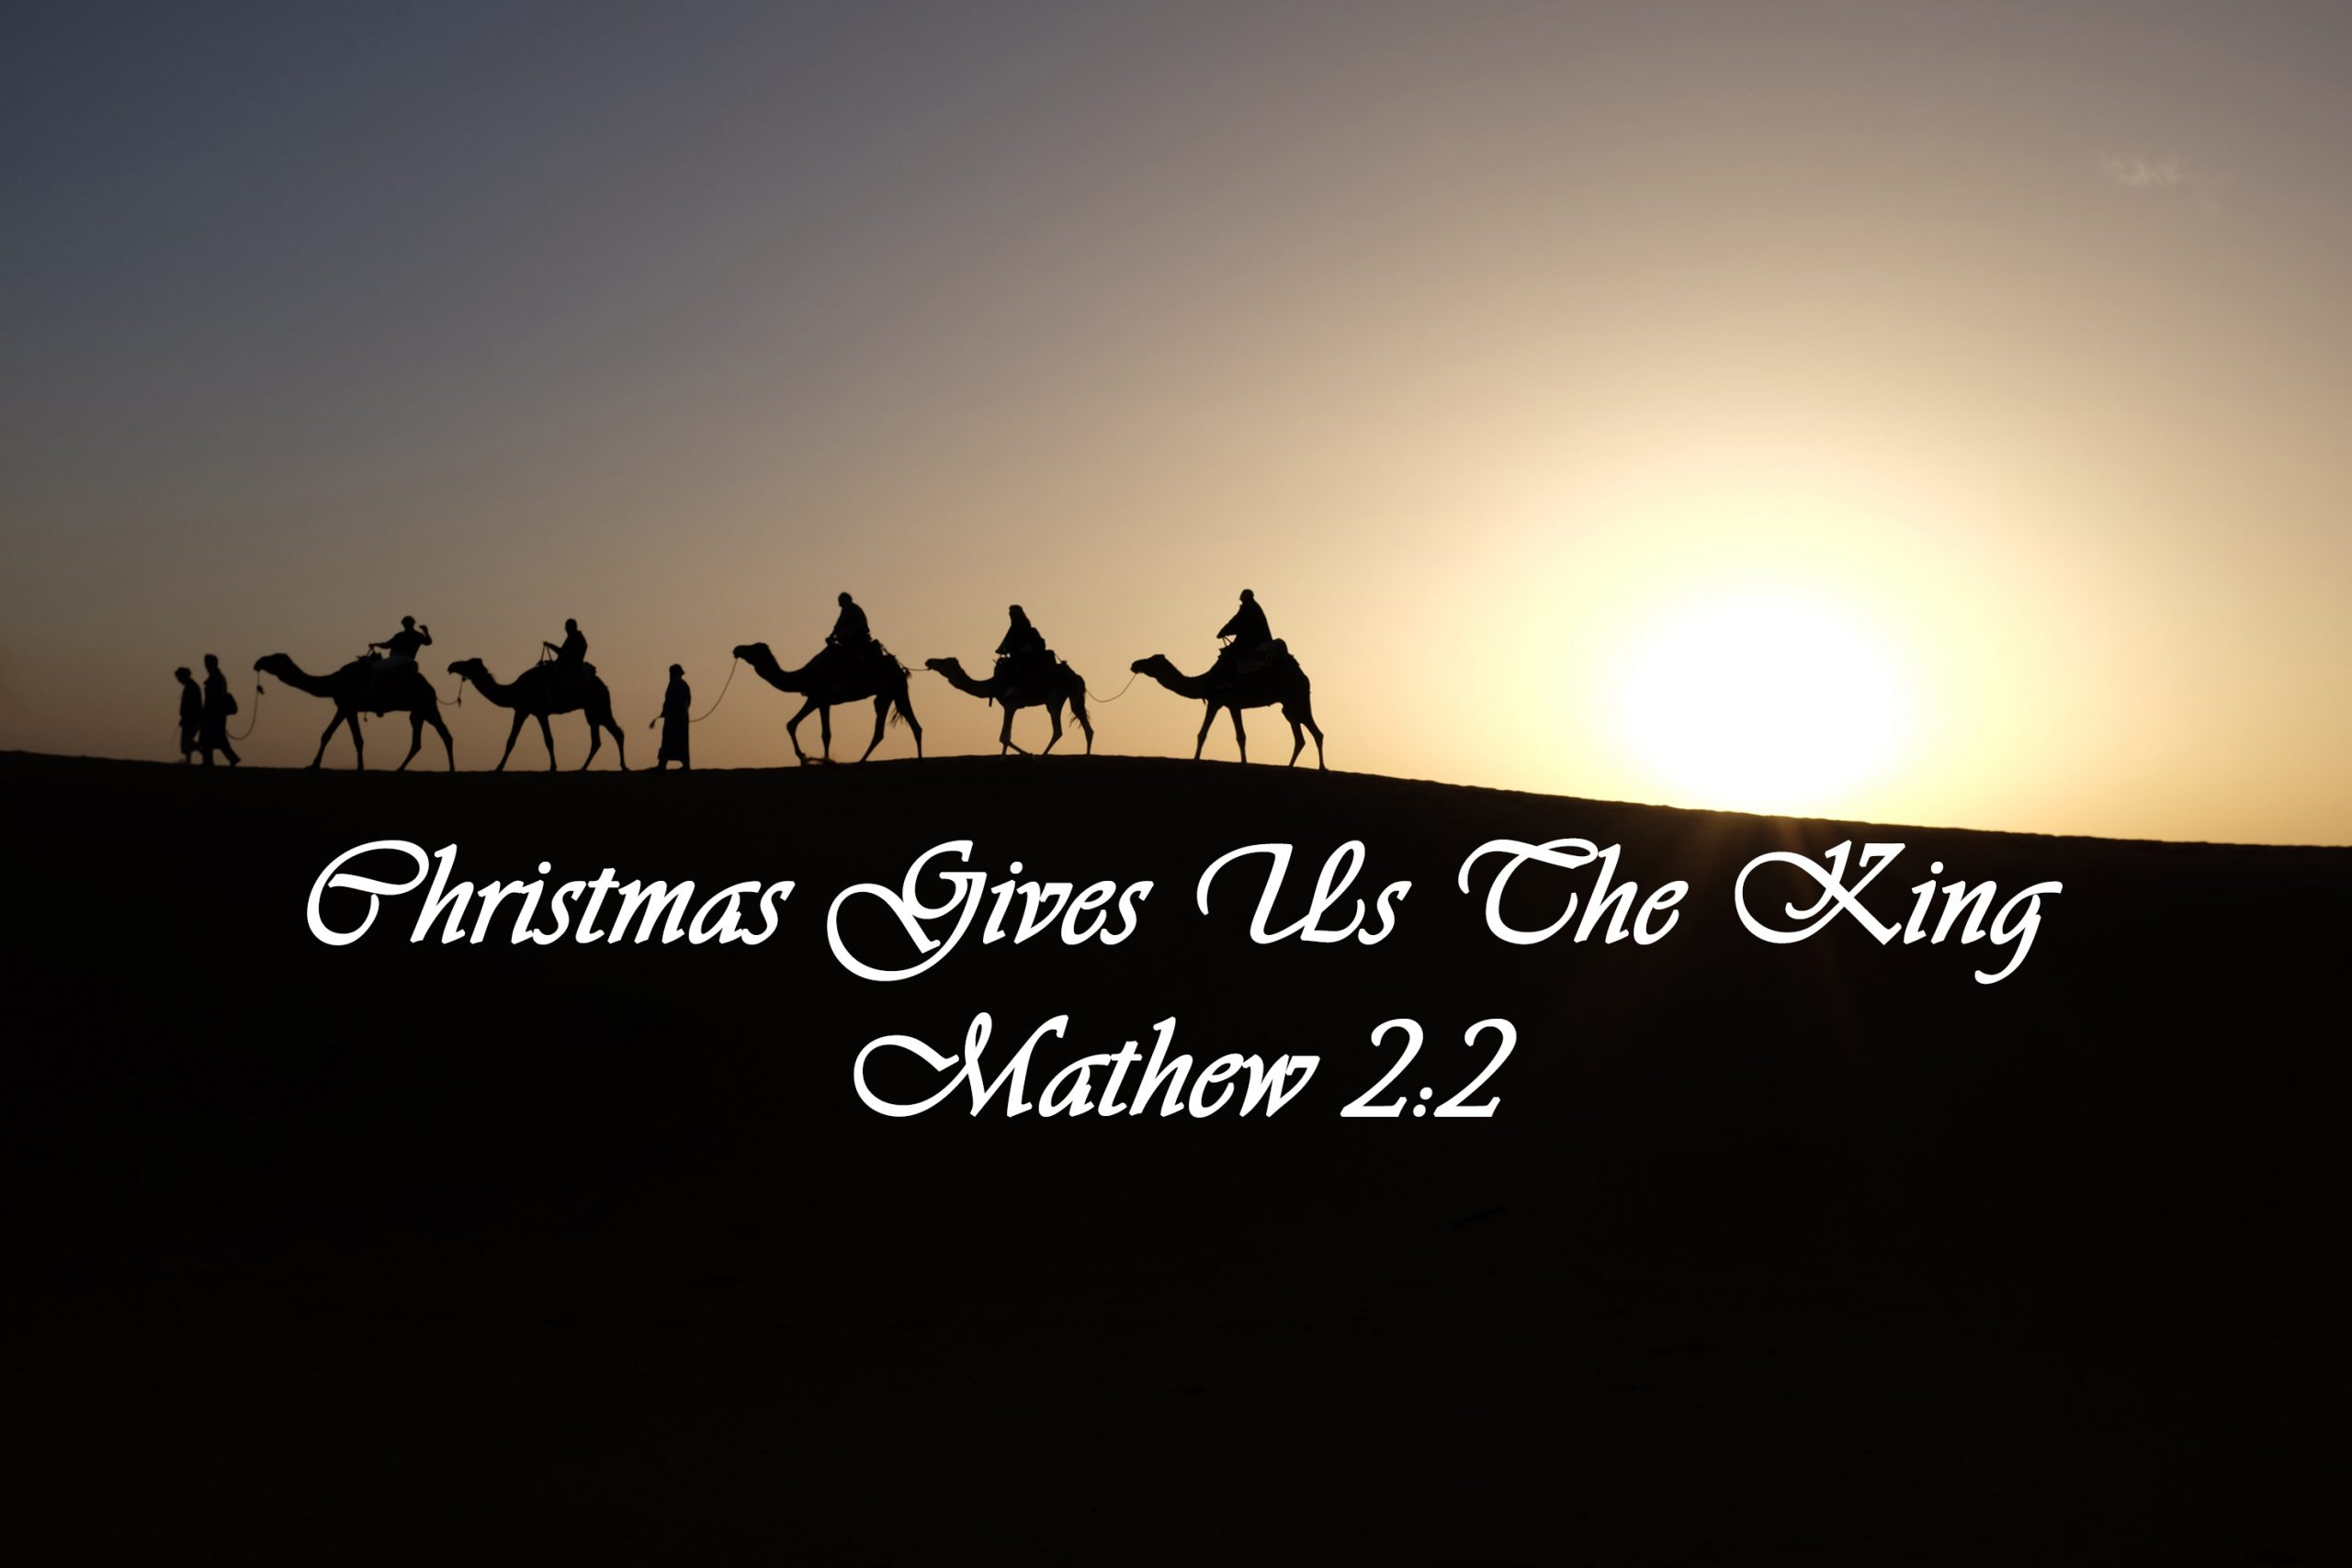 Wise men going to Bethlehem